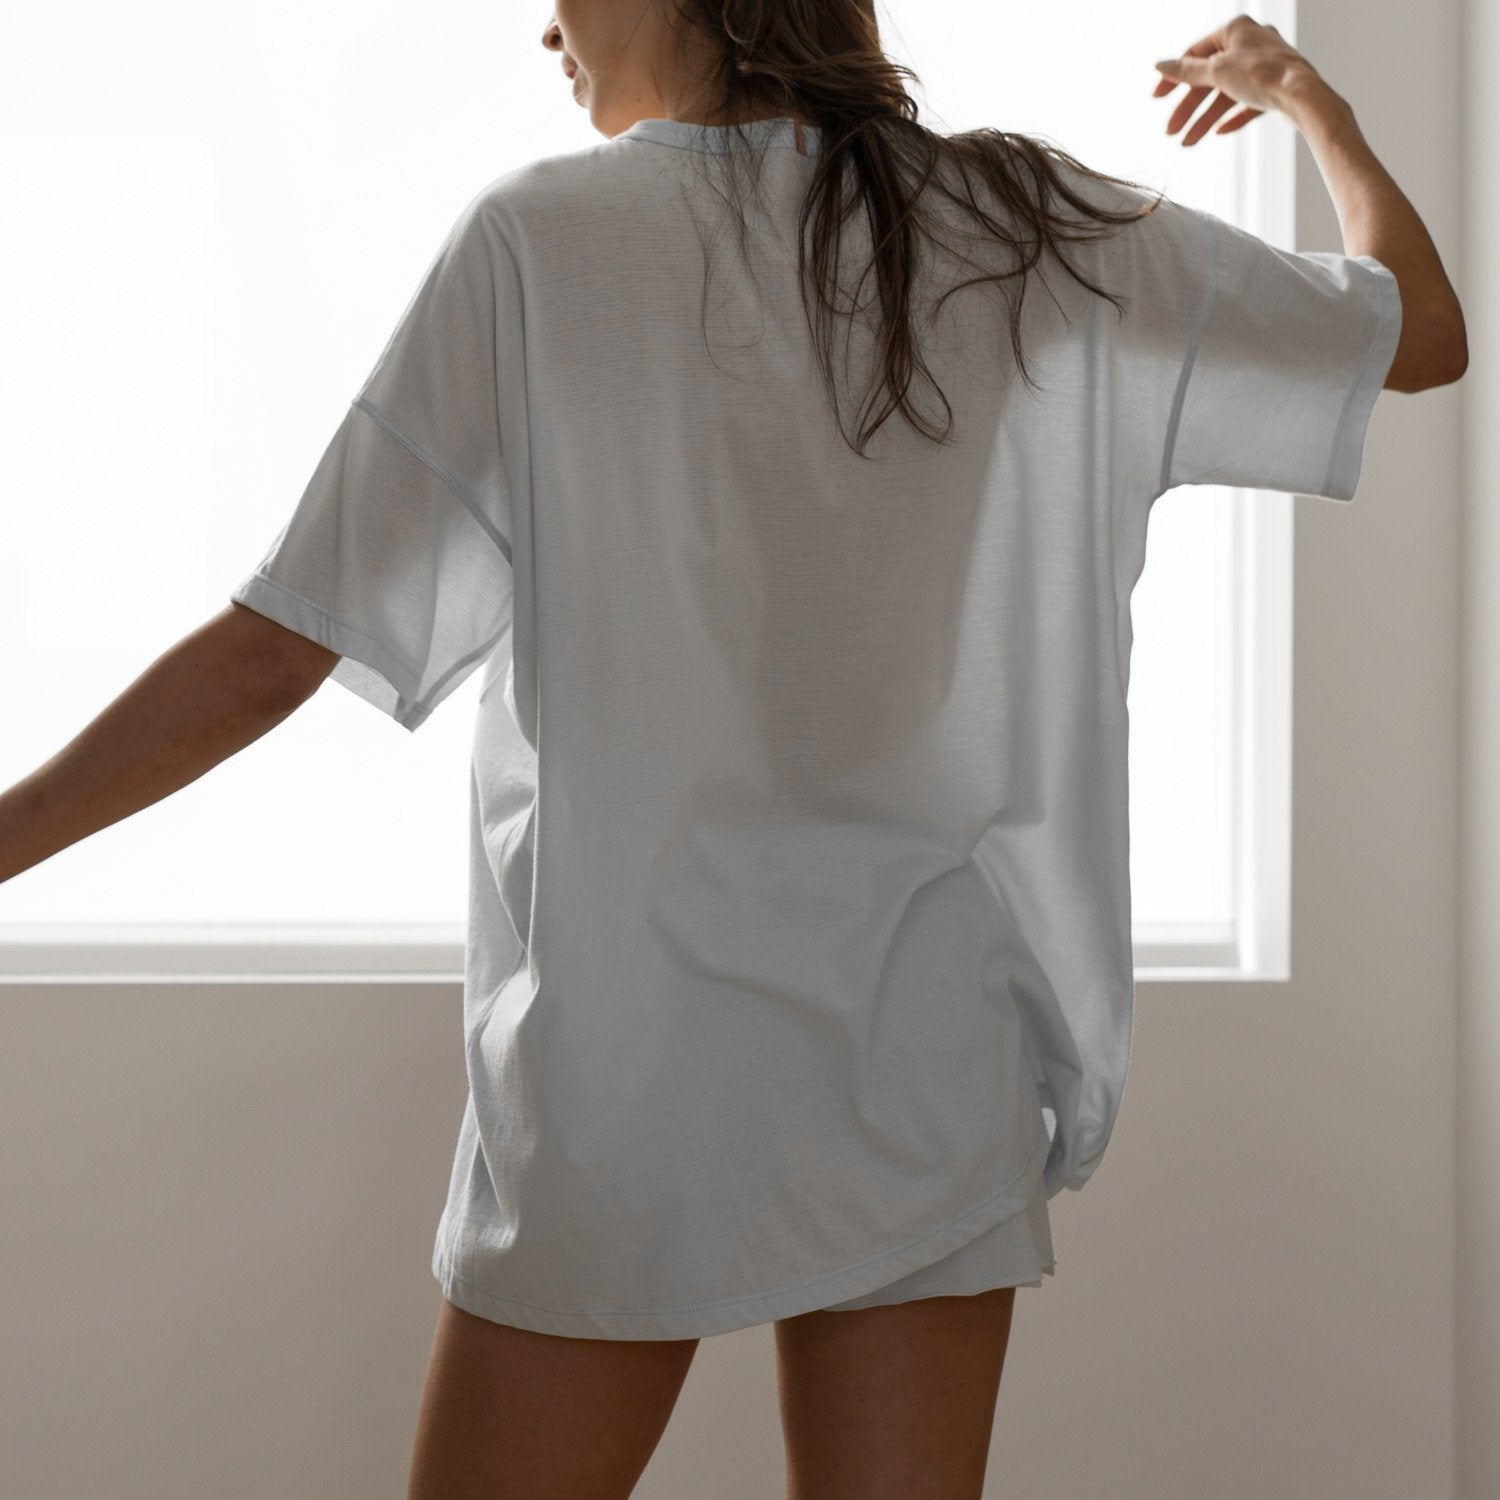 Lunya Sleepwear Cool Every Body Tee - #Brisk